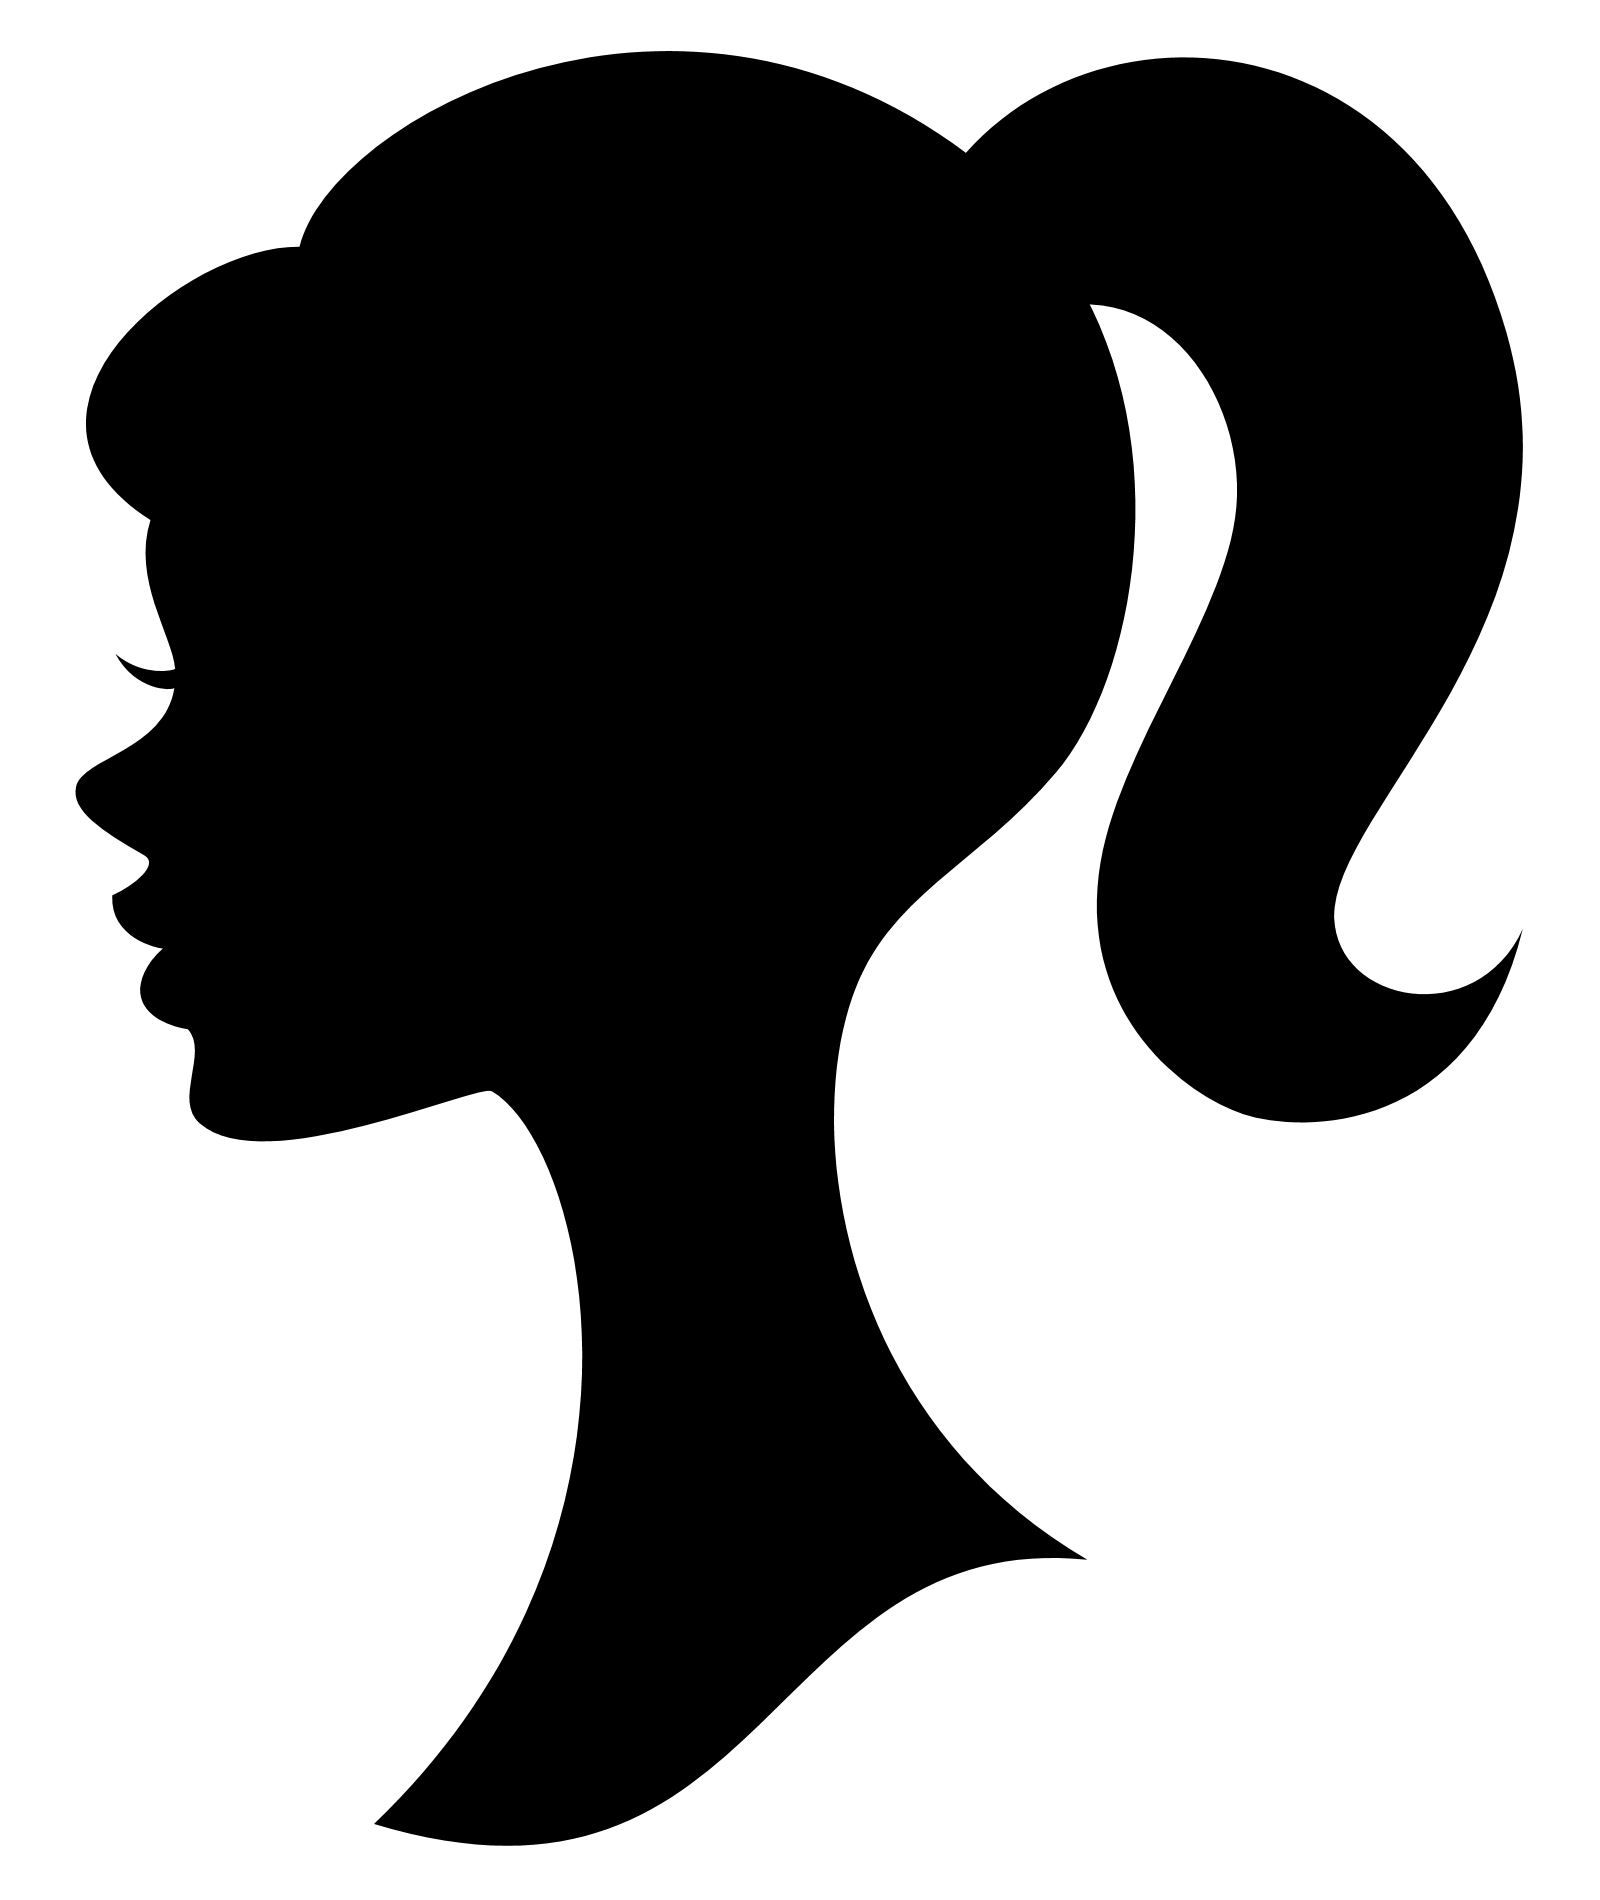 barbie silhouette barbie silhouettes file barbie silhouettes svg by svgfileslab barbie silhouette